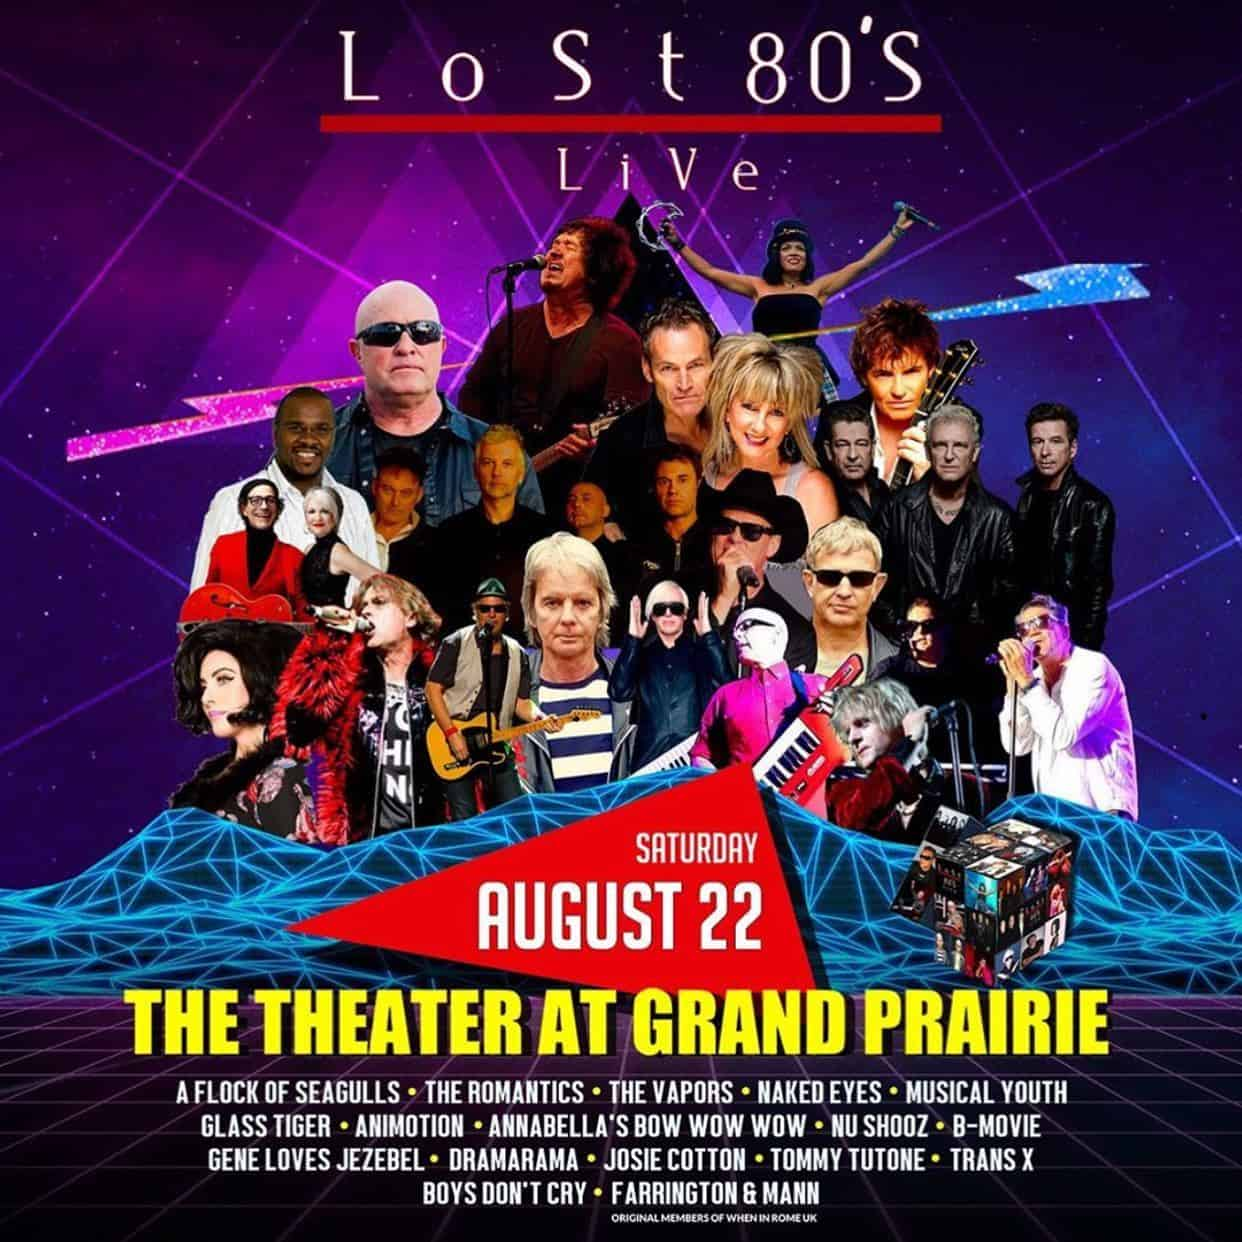 Lost 80s Live: Grand Prarie, TX